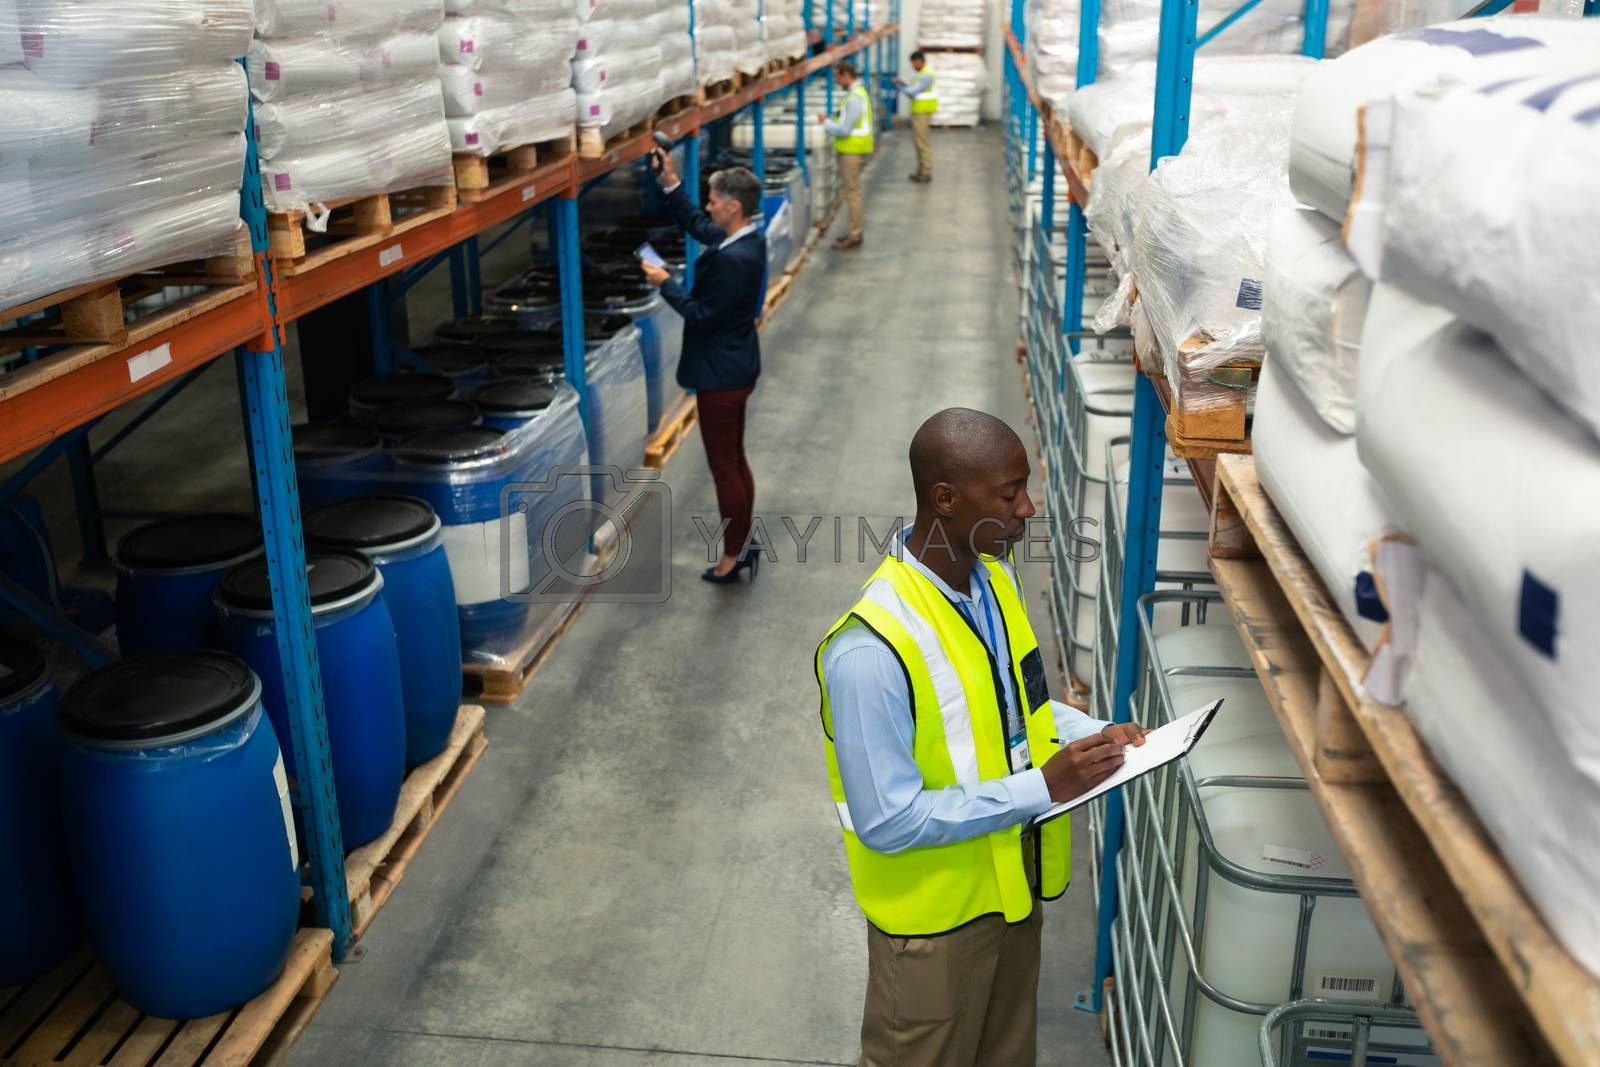 High angle side view of diverse warehouse staff checking stocks in aisle in warehouse. They are holding clipboards and writing in it. This is a freight transportation and distribution warehouse. Industrial and industrial workers concept